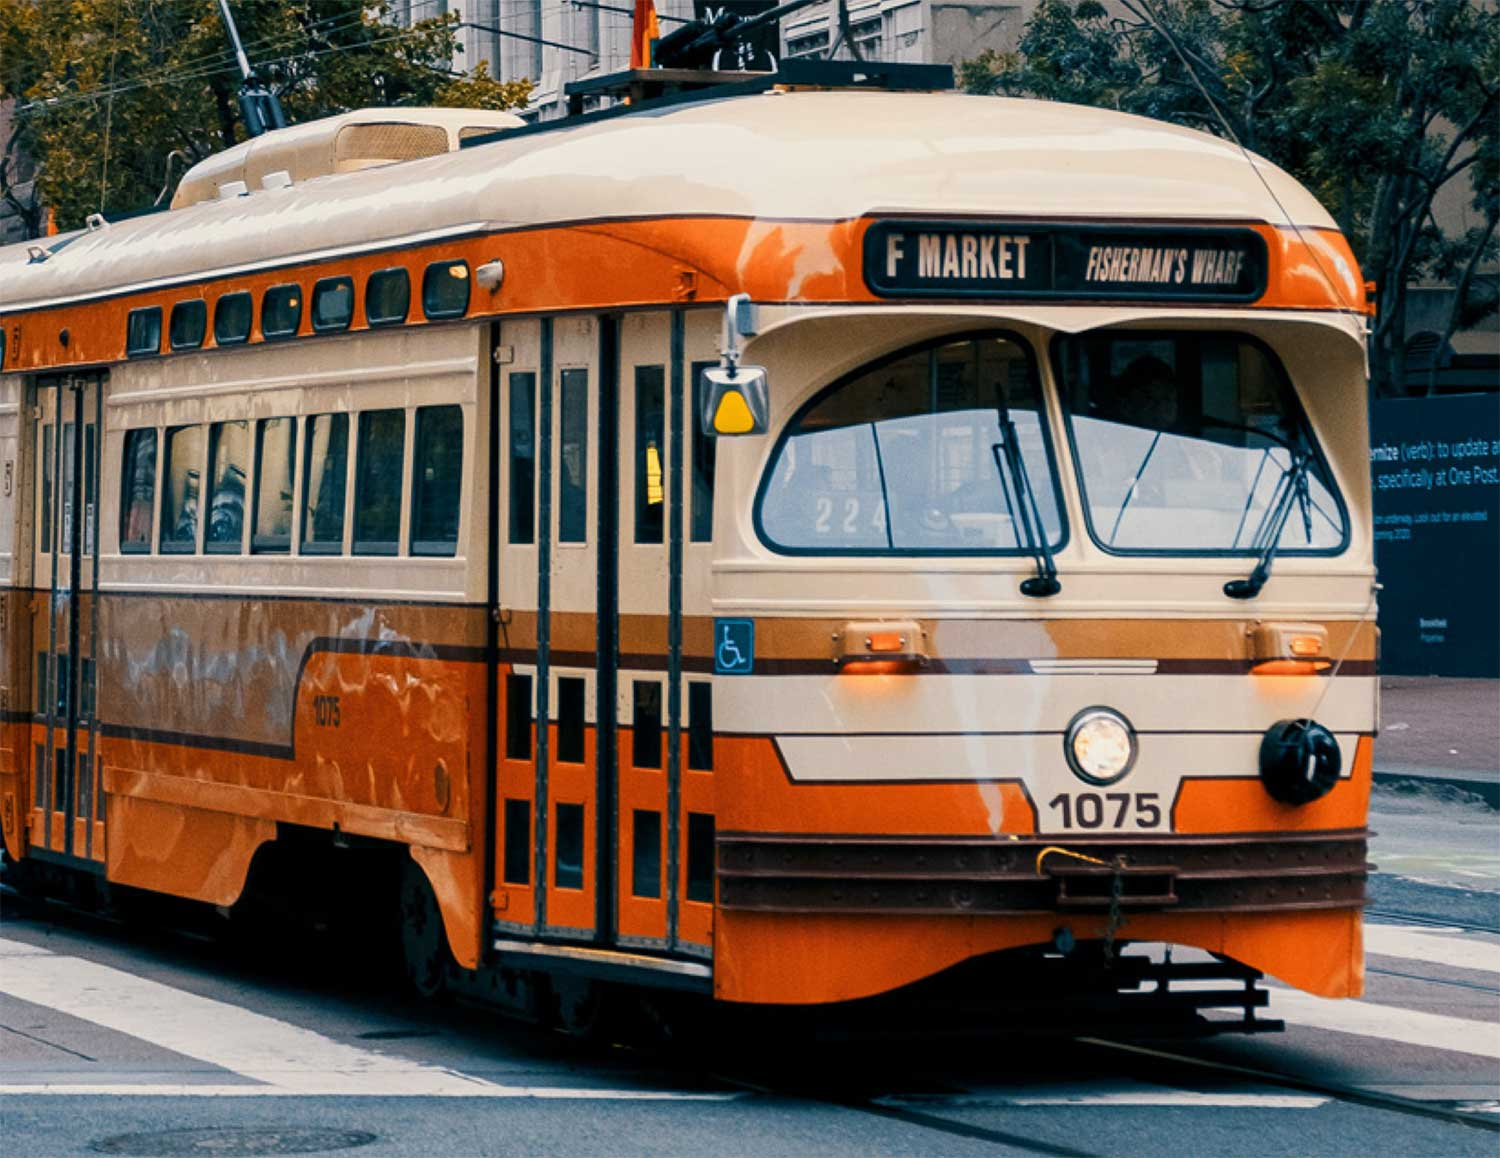 Image of one of the San Francisco trolleys